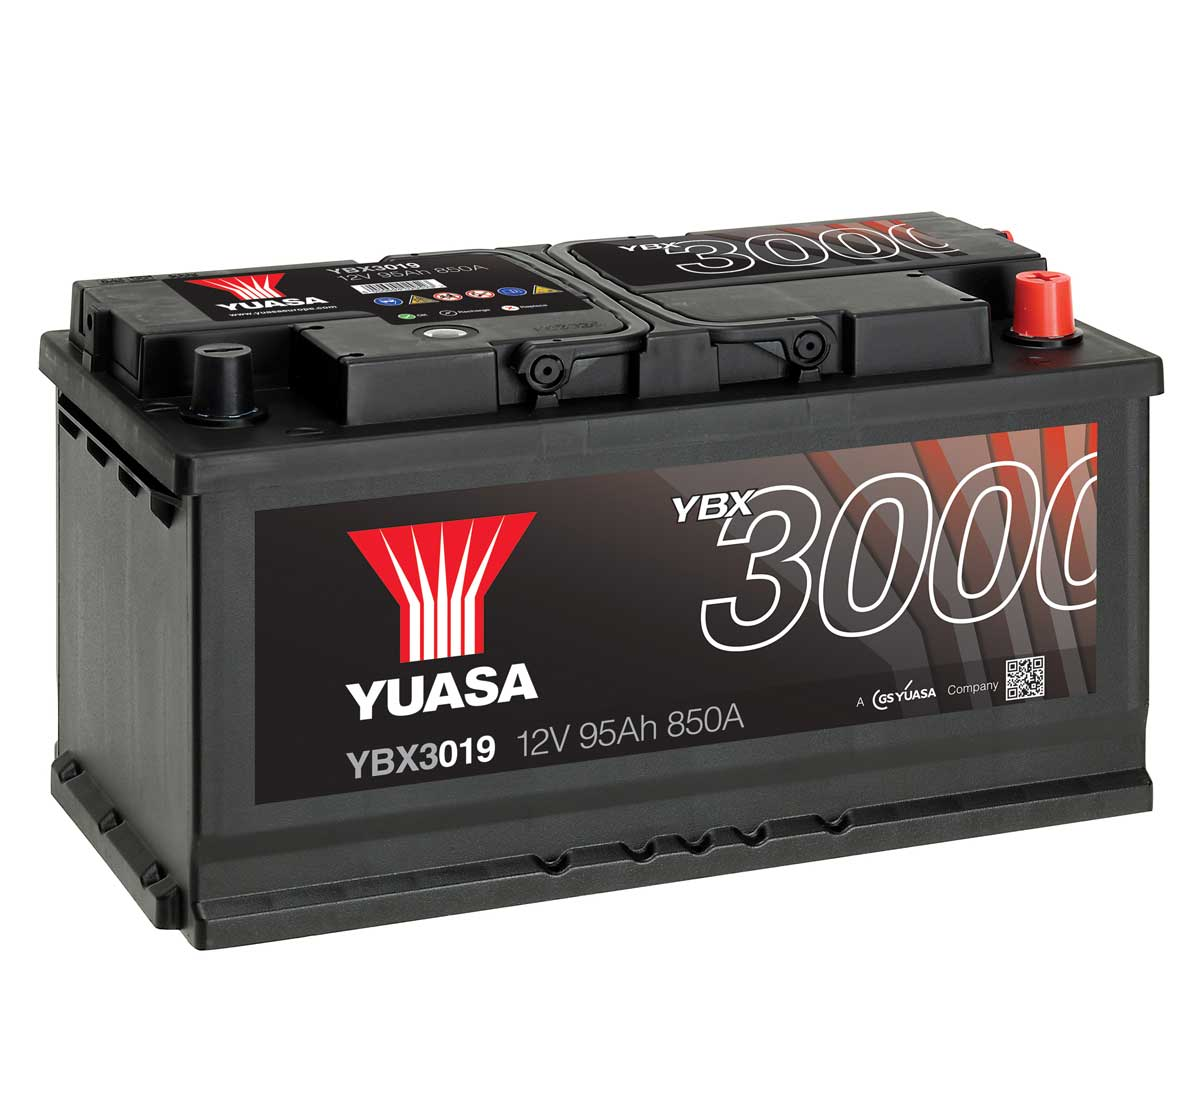 yuasa ybx3019 12v car battery mds battery. Black Bedroom Furniture Sets. Home Design Ideas